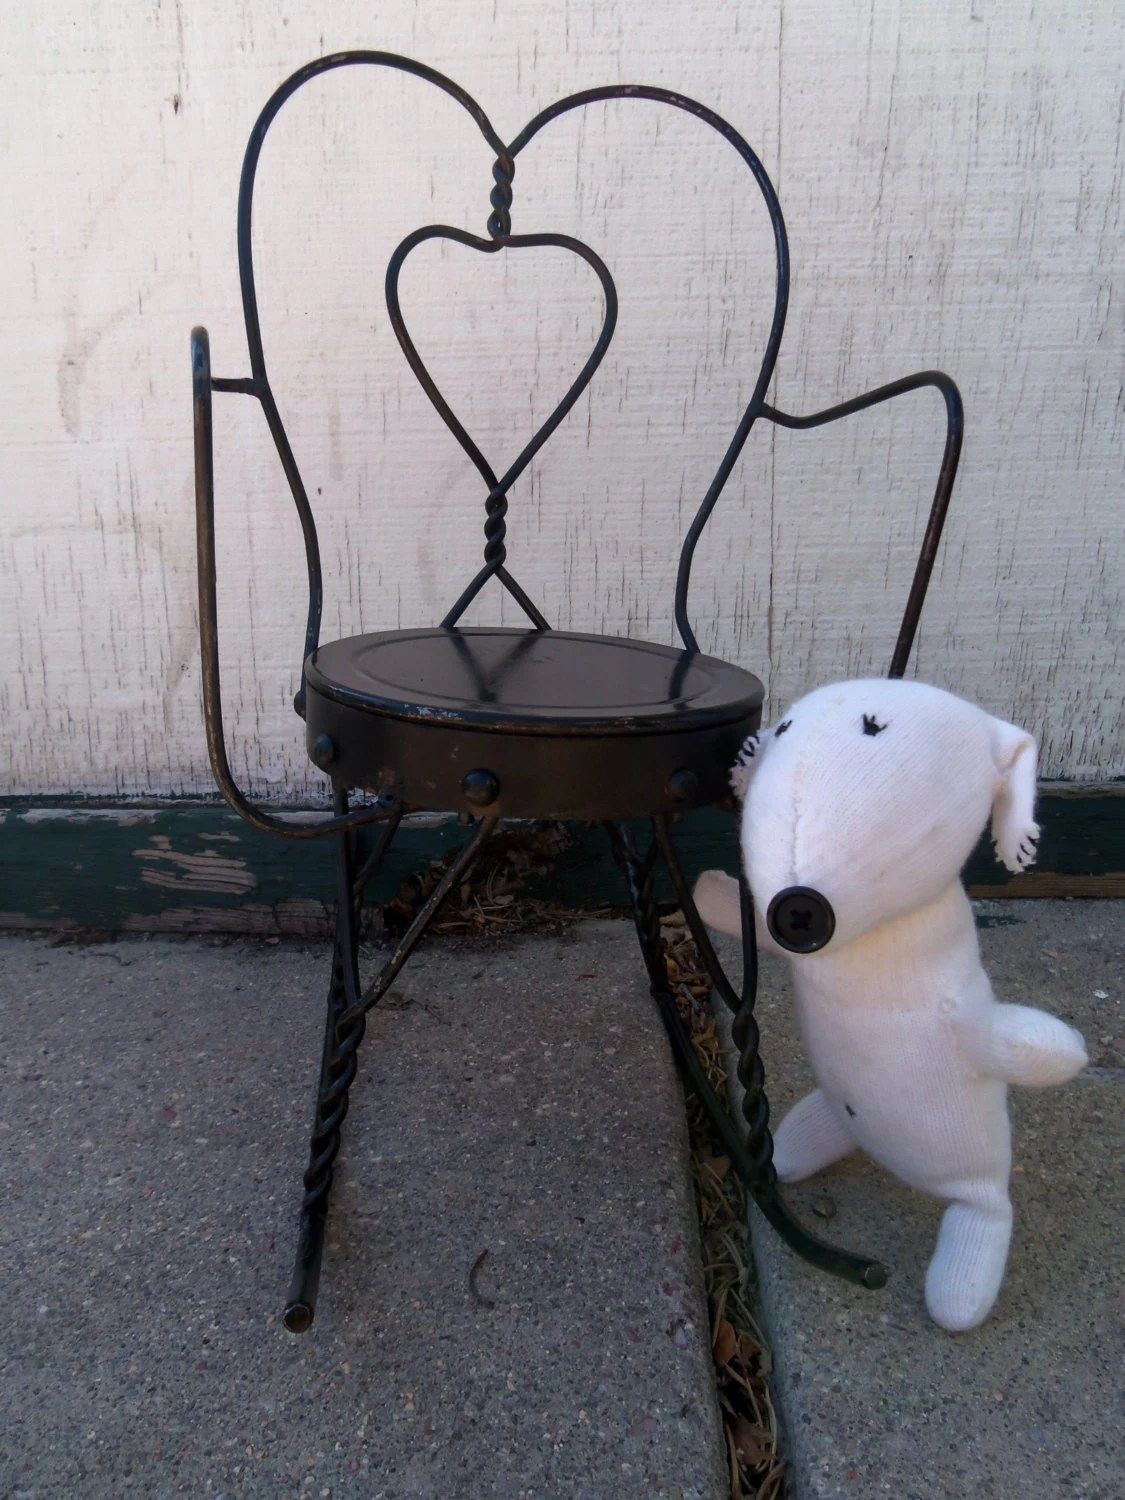 wrought iron rocking chair benchmaster ventura leather and storage ottoman vintage doll sized rocker